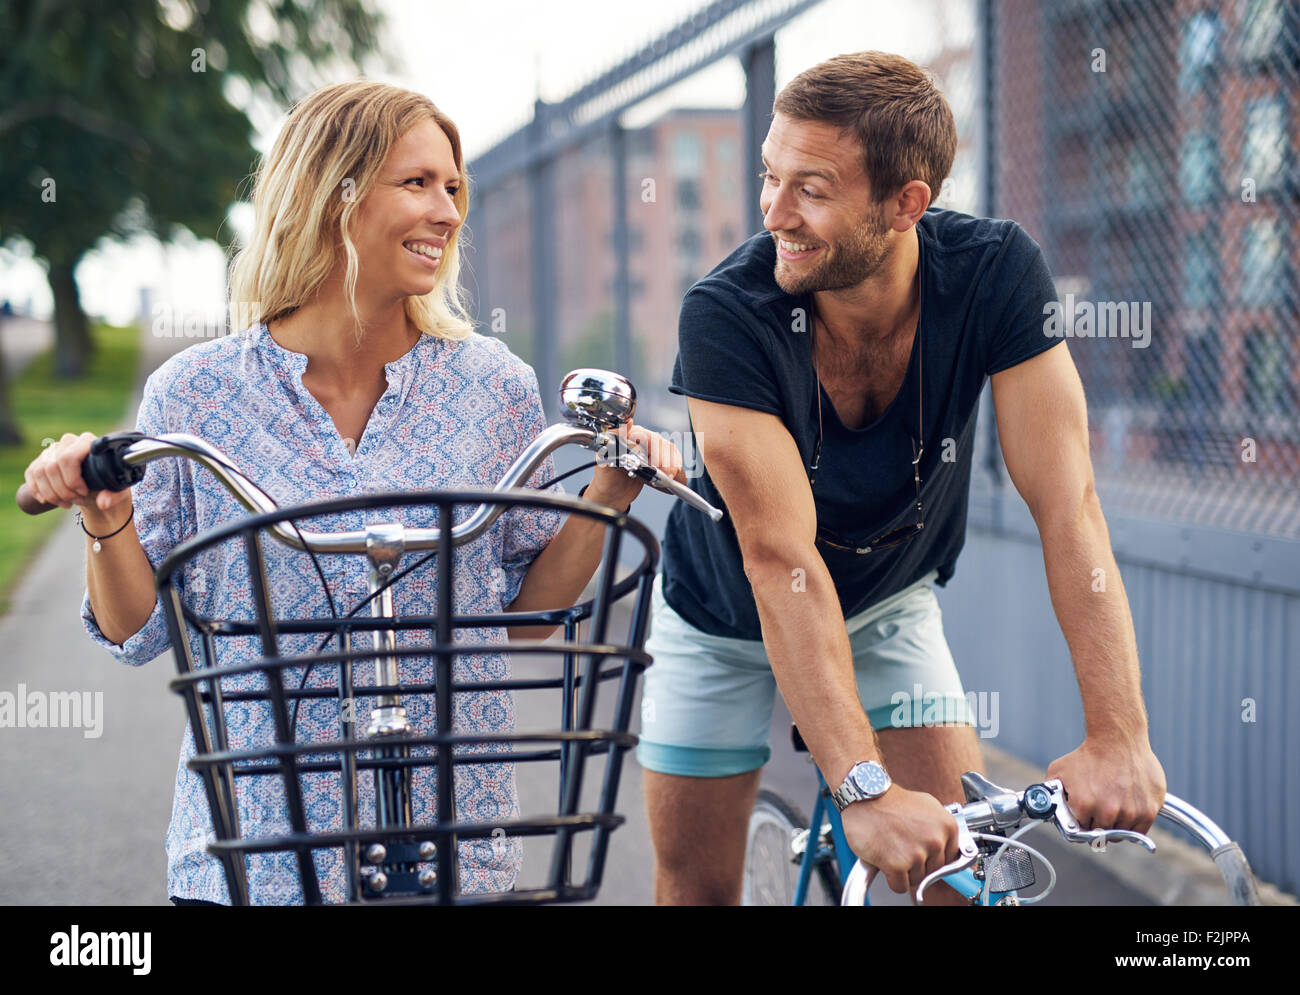 Young couple flirting as they chat in an urban street on their bicycles smiling and looking into each others eyes, - Stock Image